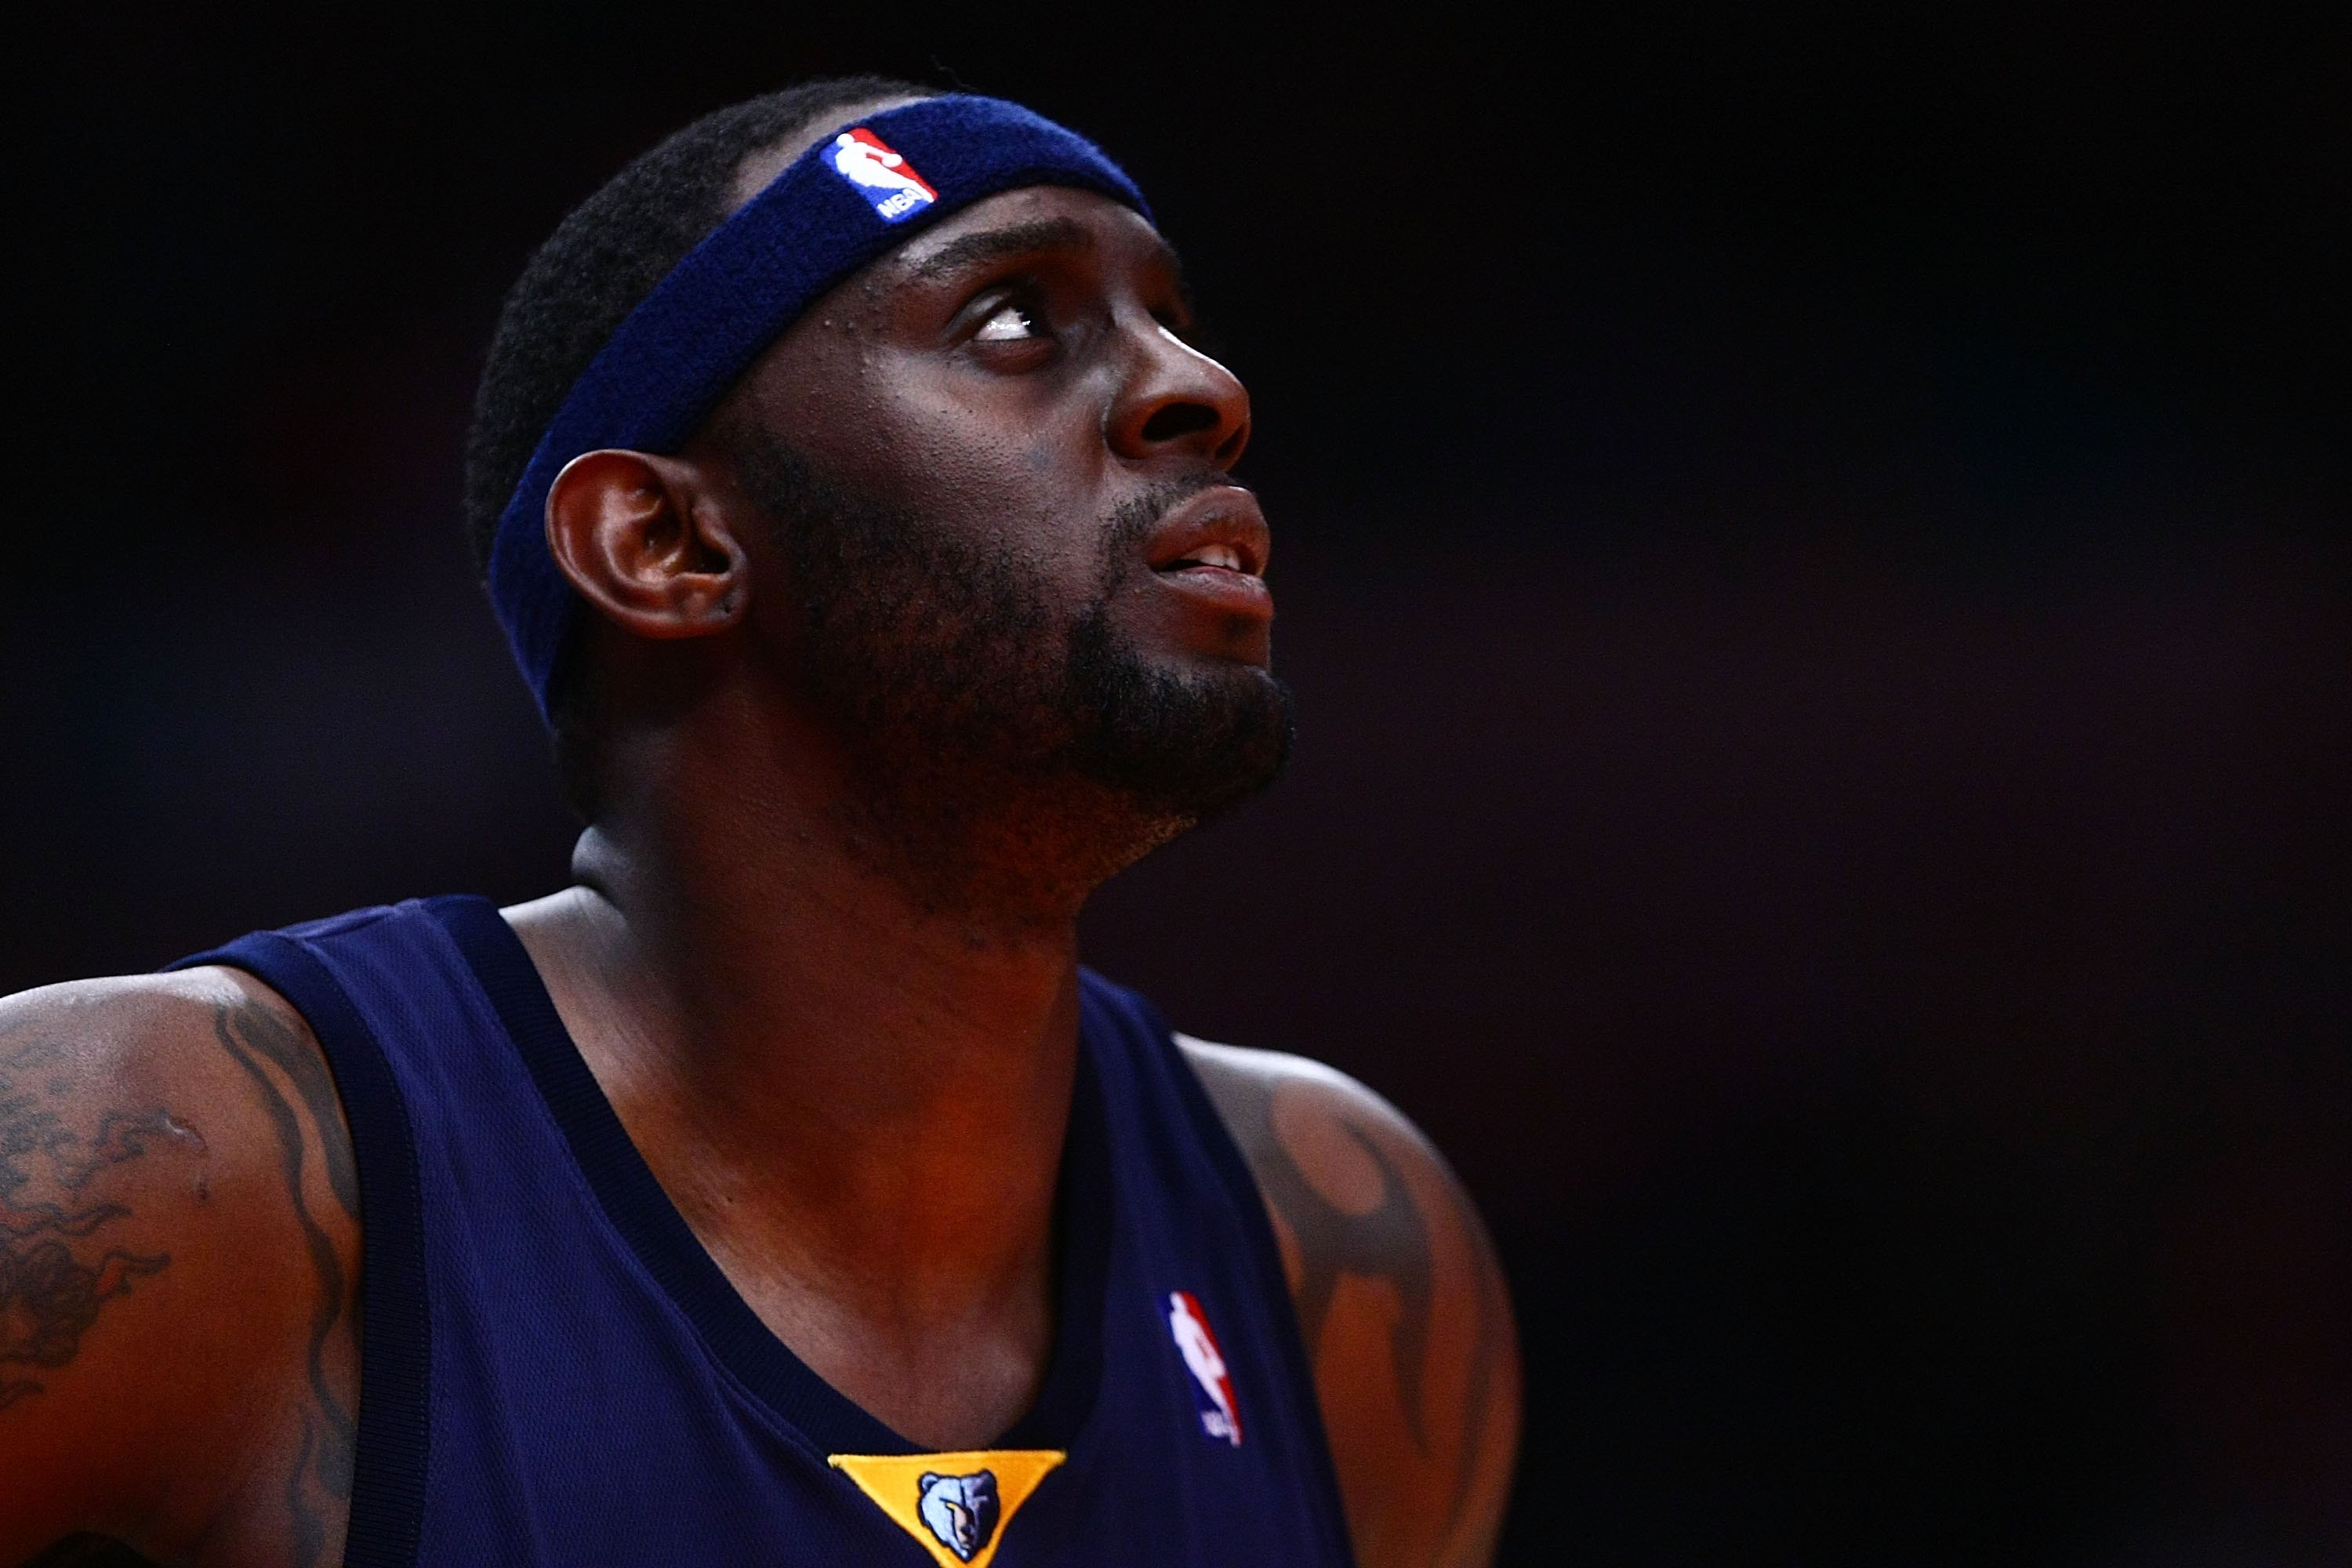 NEW YORK - JANUARY 23:  Darius Miles #3 of the Memphis Grizzlies looks on during the game against the New York Knicks at Madison Square Garden January 23, 2009 in New York City. NOTE TO USER: User expressly acknowledges and agrees that, by downloading and